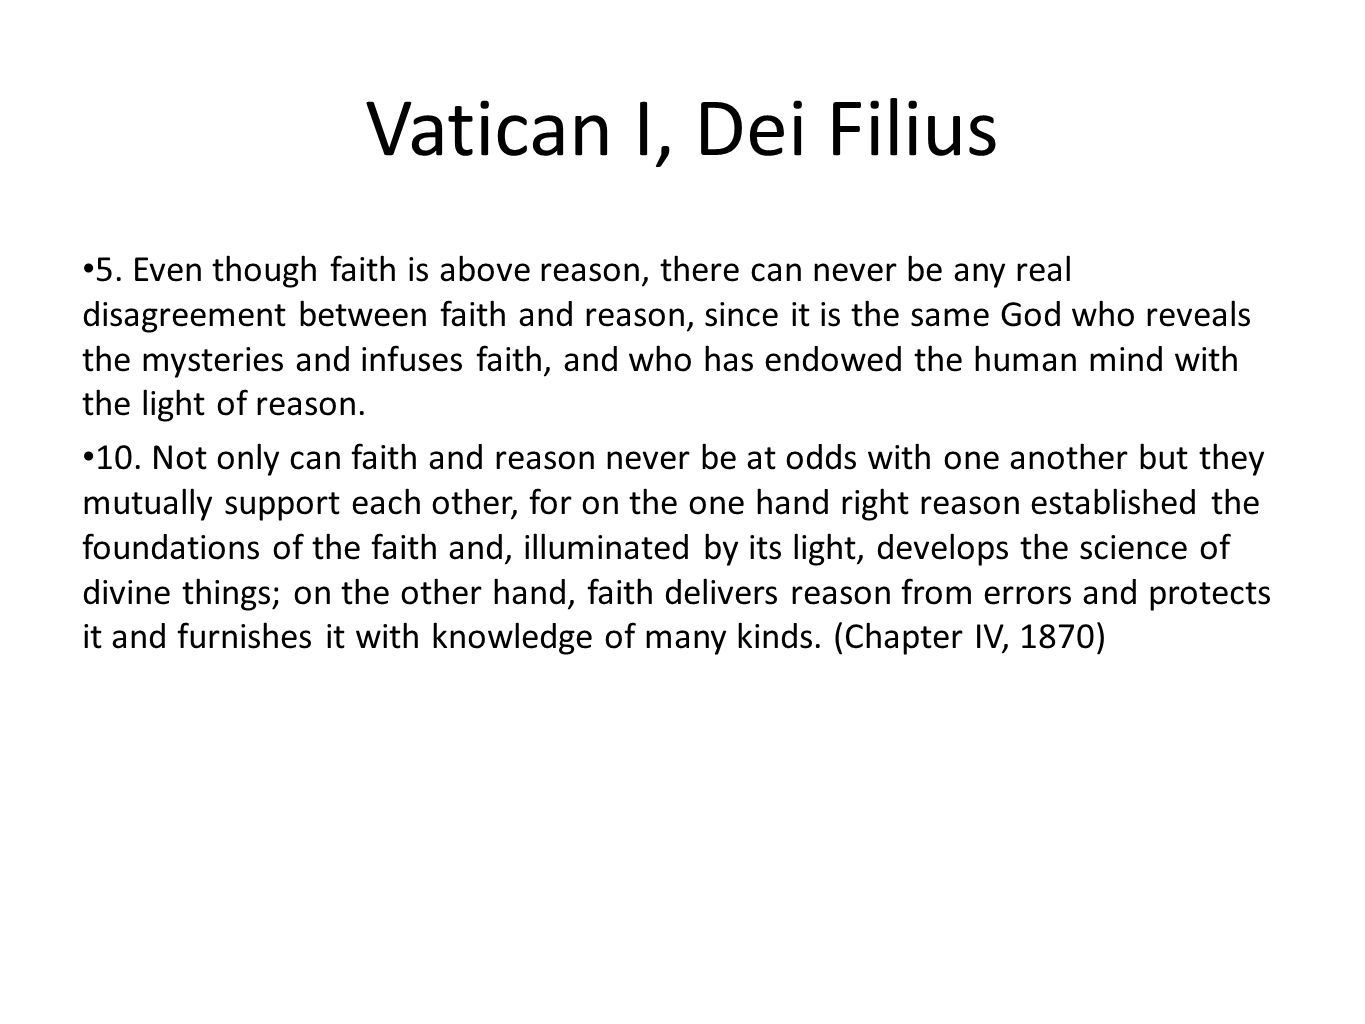 Vatican I, Dei Filius 5. Even though faith is above reason, there can never be any real disagreement between faith and reason, since it is the same Go